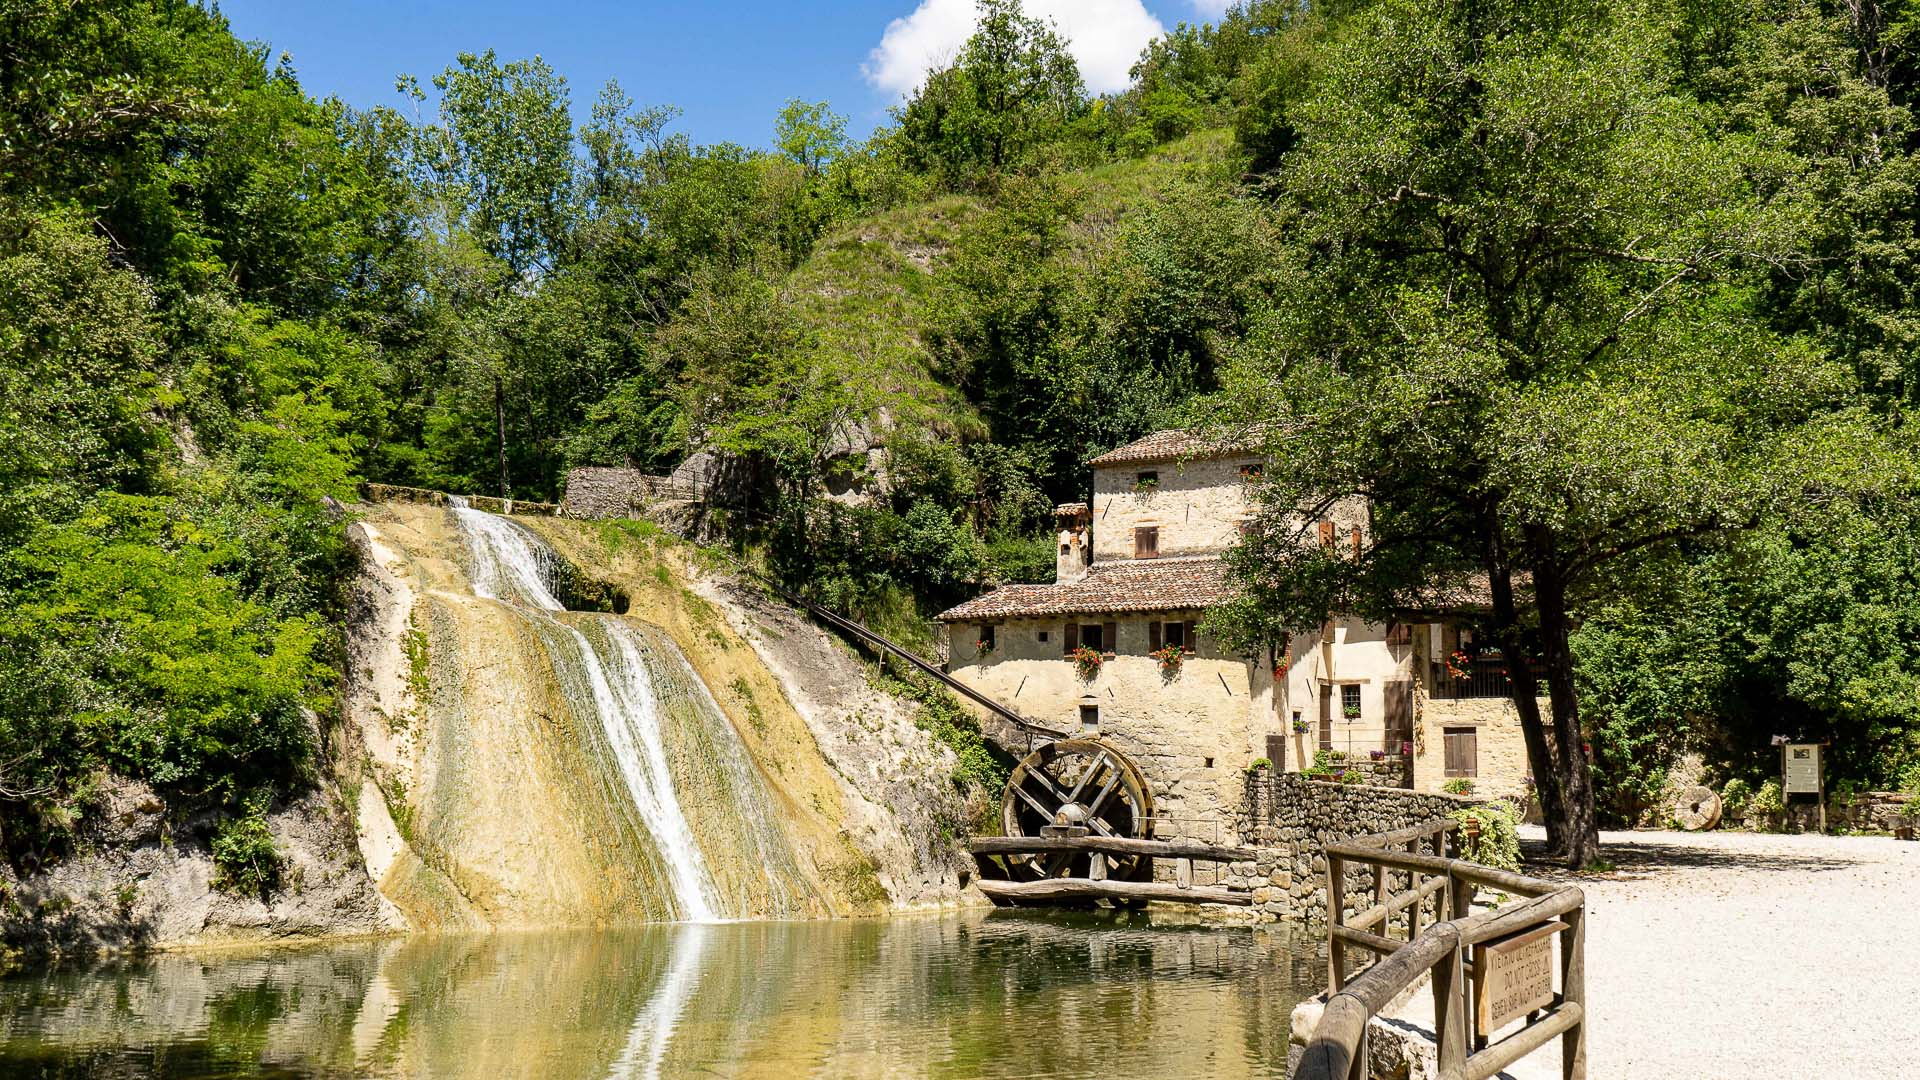 A journey through the Prosecco's land